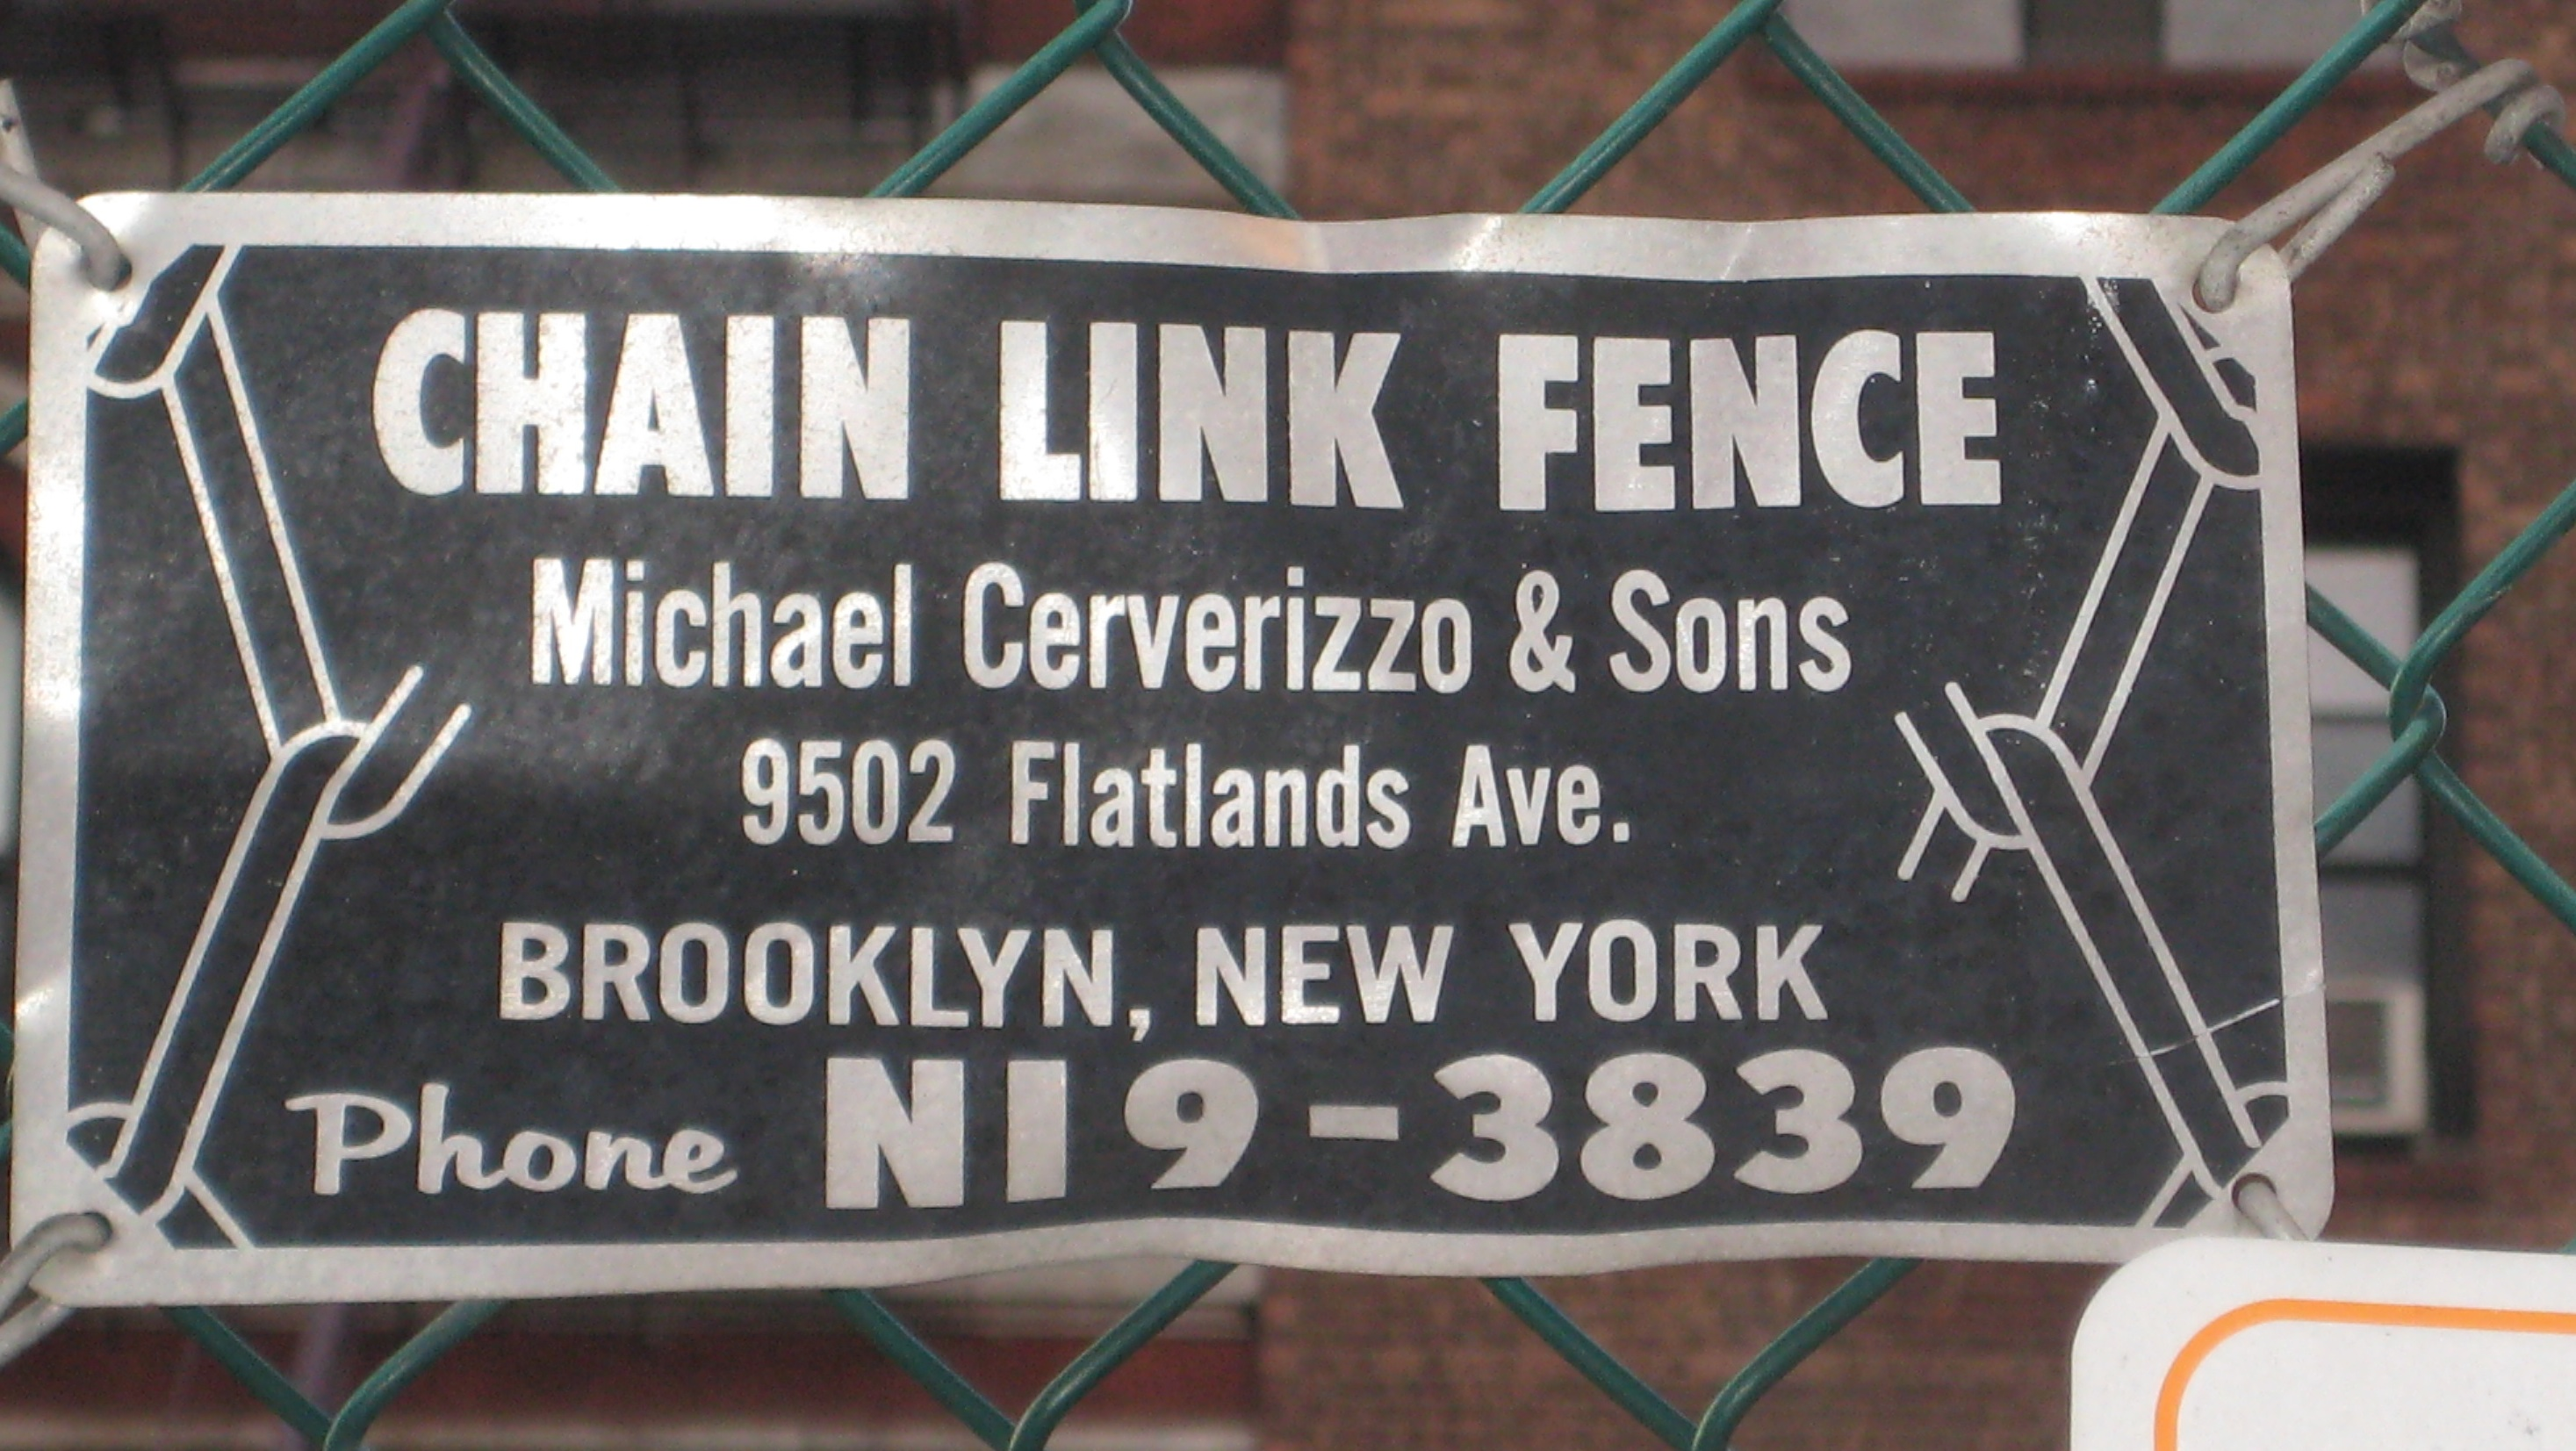 Rome NY Chain Link Fence Contractors | Rome Chain Link Fence Companies